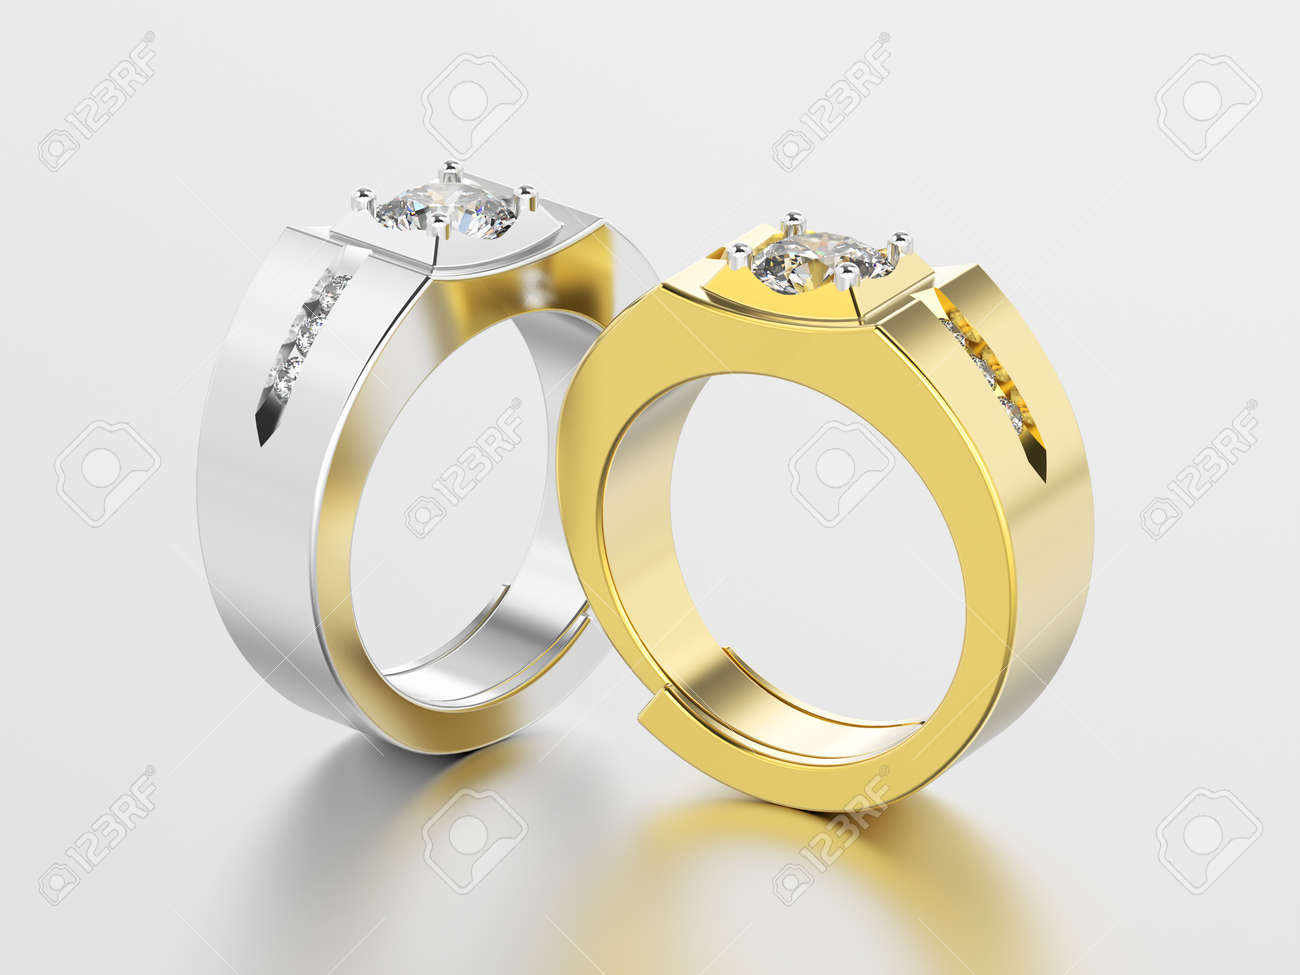 3d Illustration Two White Gold Or Silver And Yellow Gold Men Stock